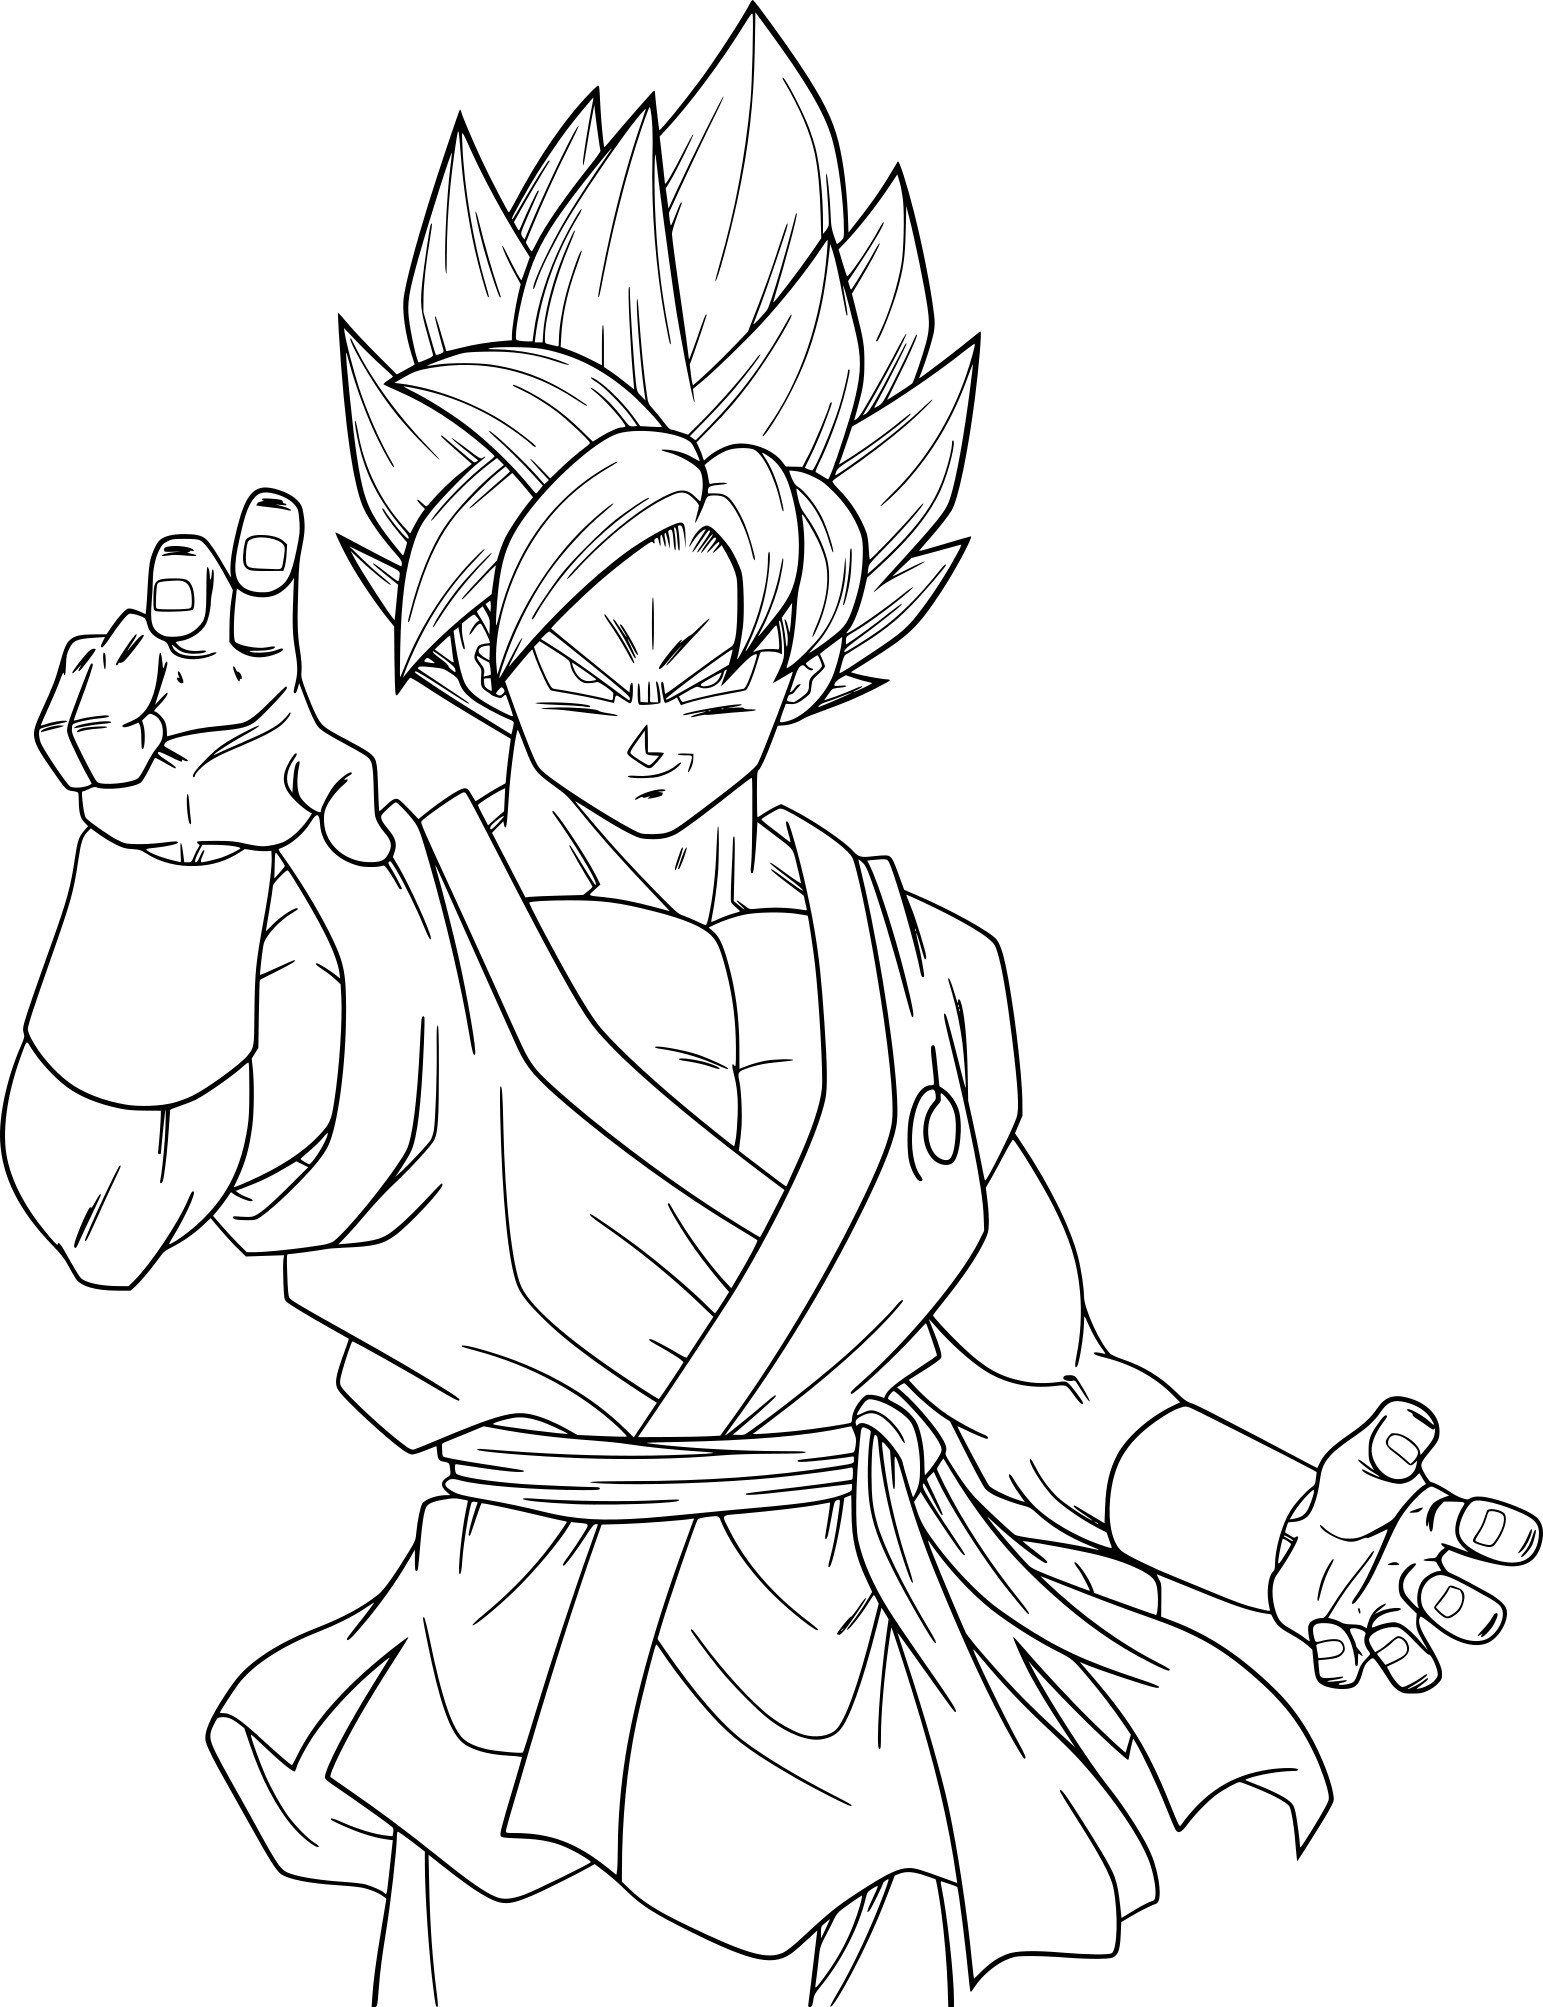 Coloriage sangoku super saiyan blue imprimer sur coloriages info - Coloriage dragon ball z sangoku ...